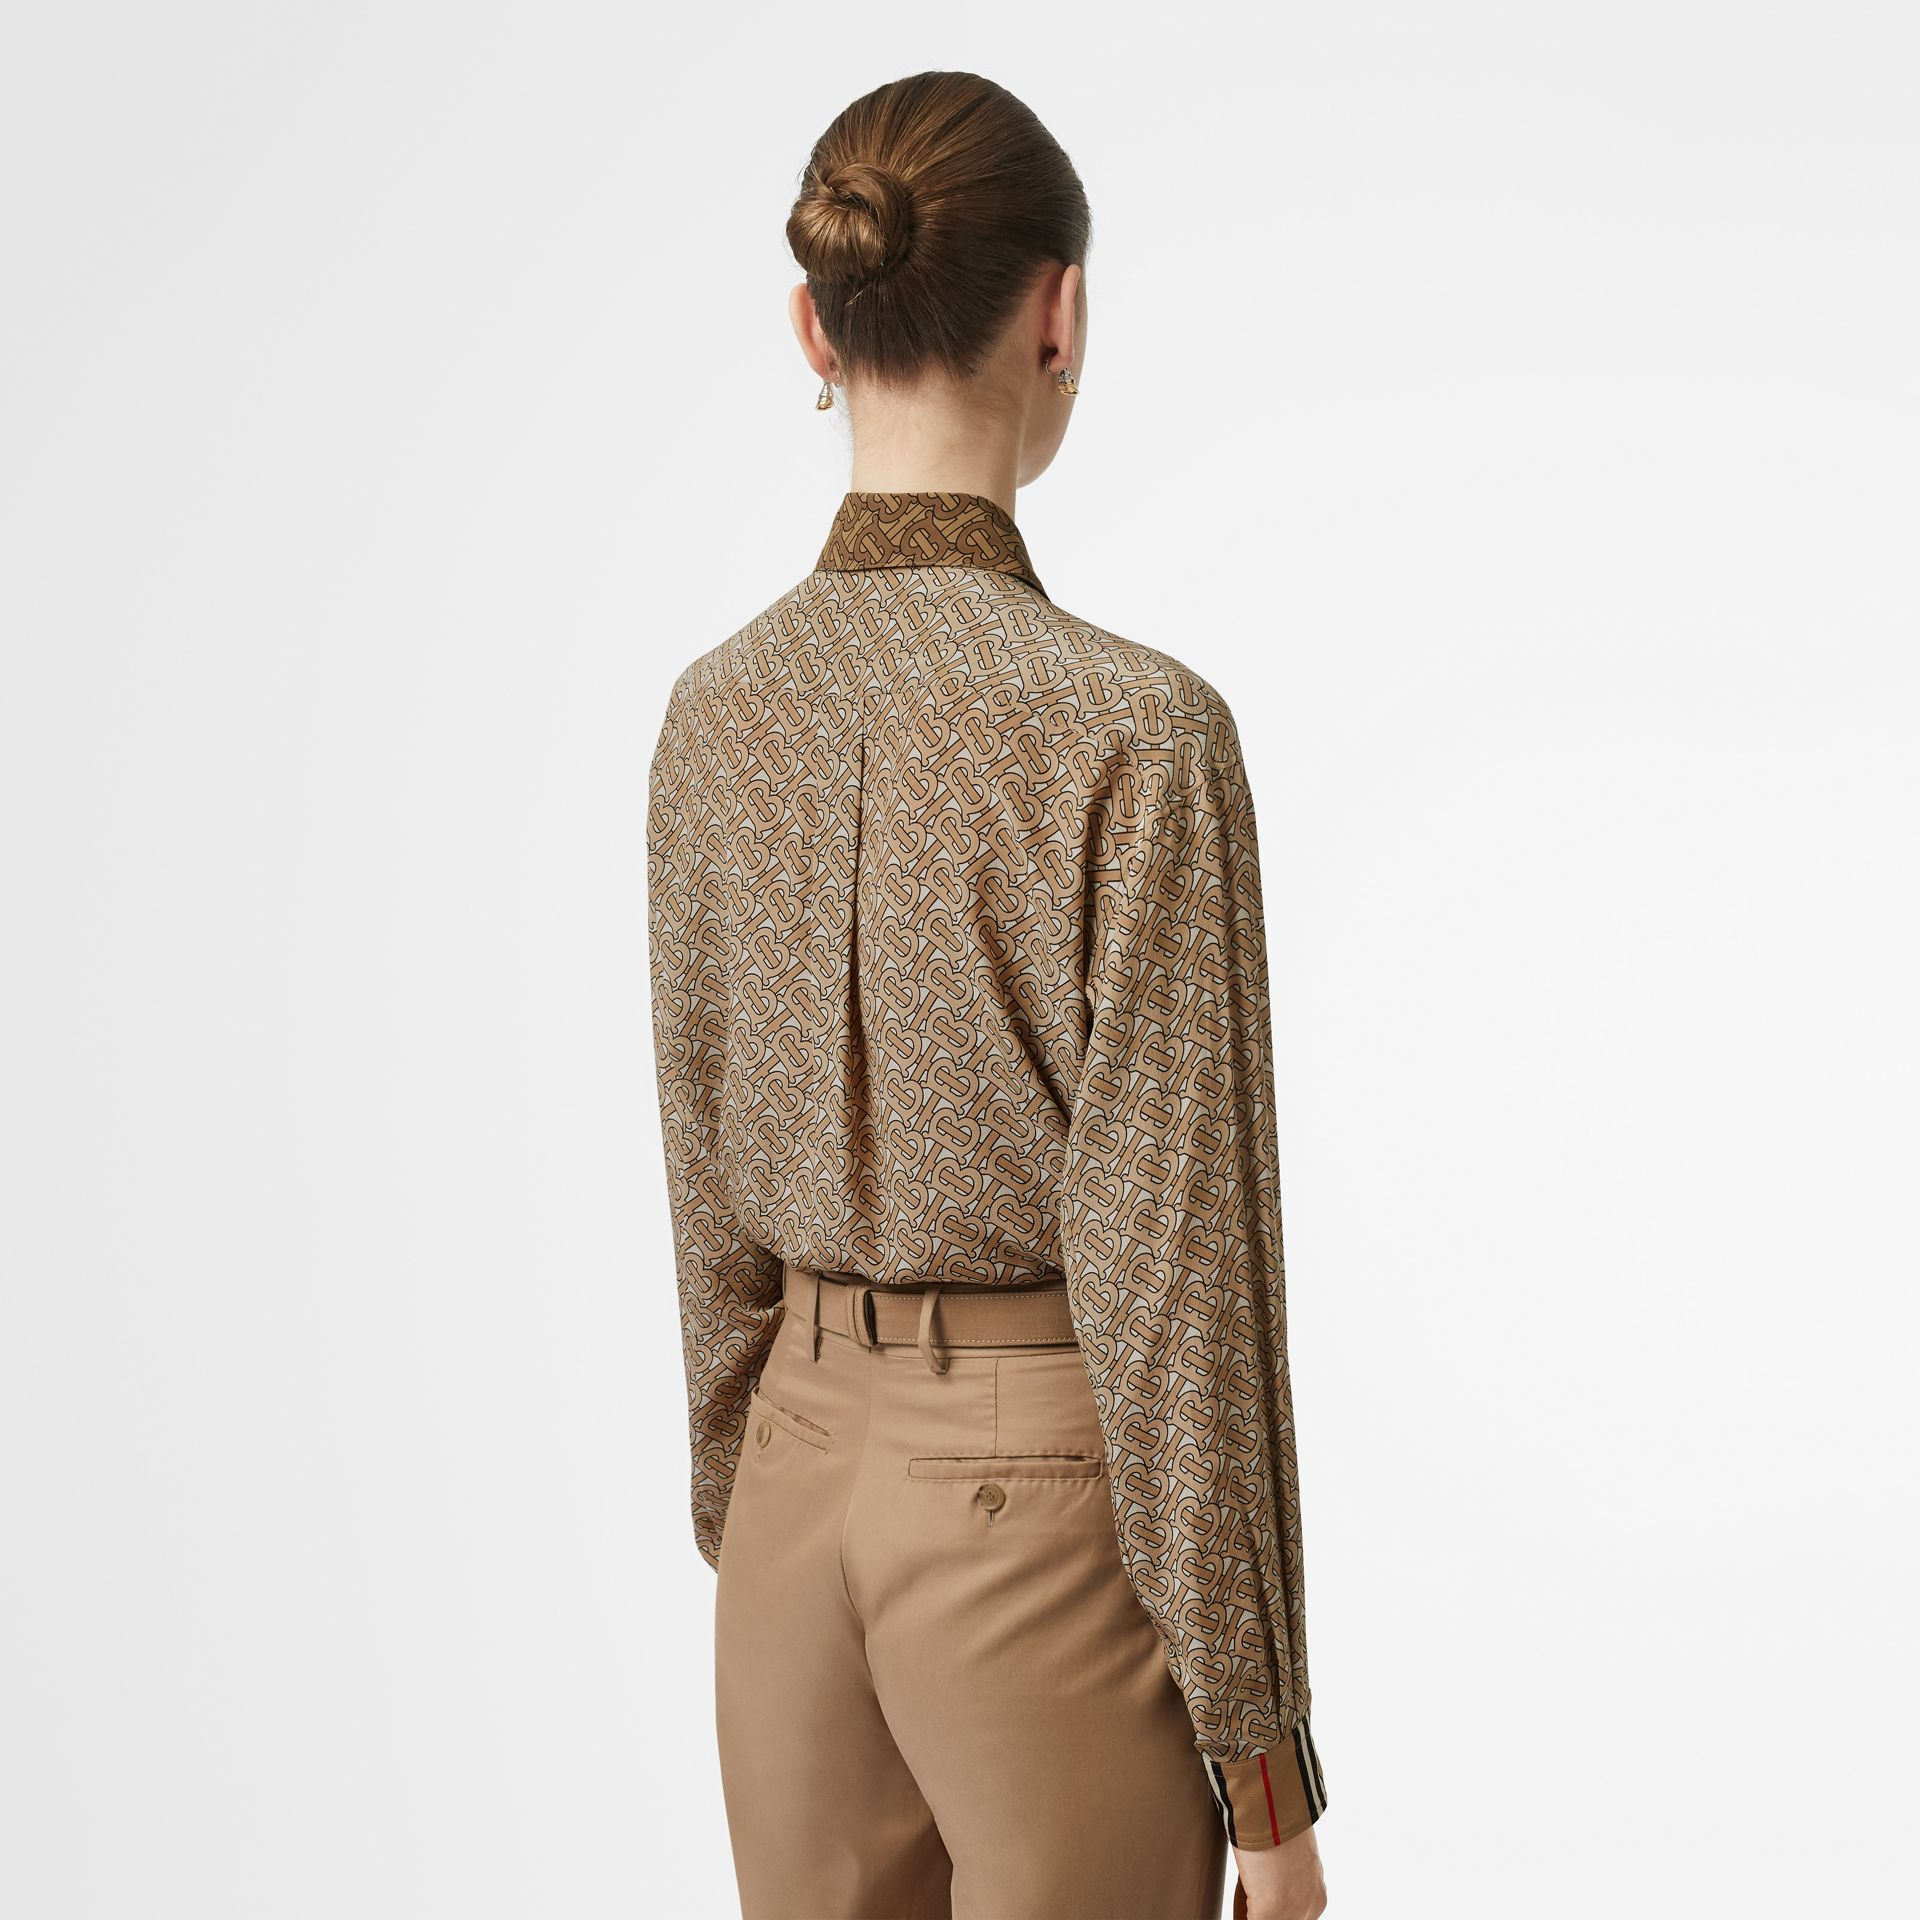 Two-tone Monogram Print Silk Oversized Shirt in Light Camel - Women | Burberry Australia - gallery image 2